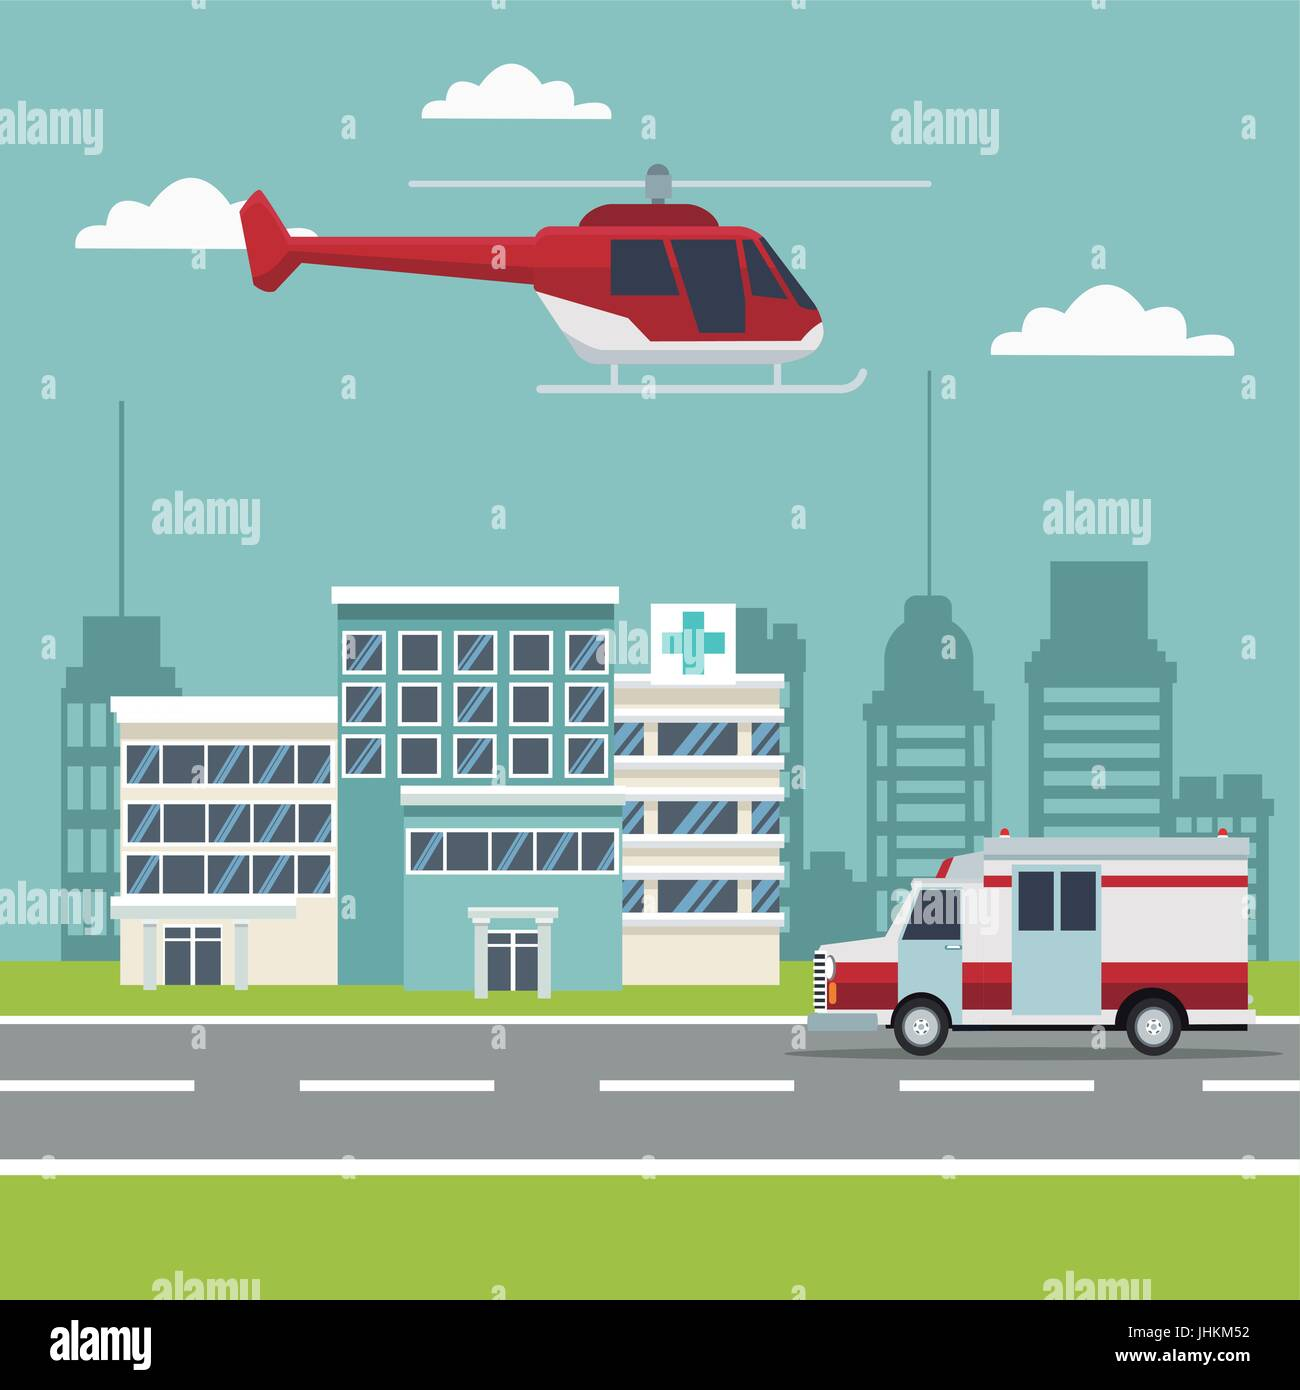 city landscape scene building hospitals with ambulance and helicopter flying overhead - Stock Vector